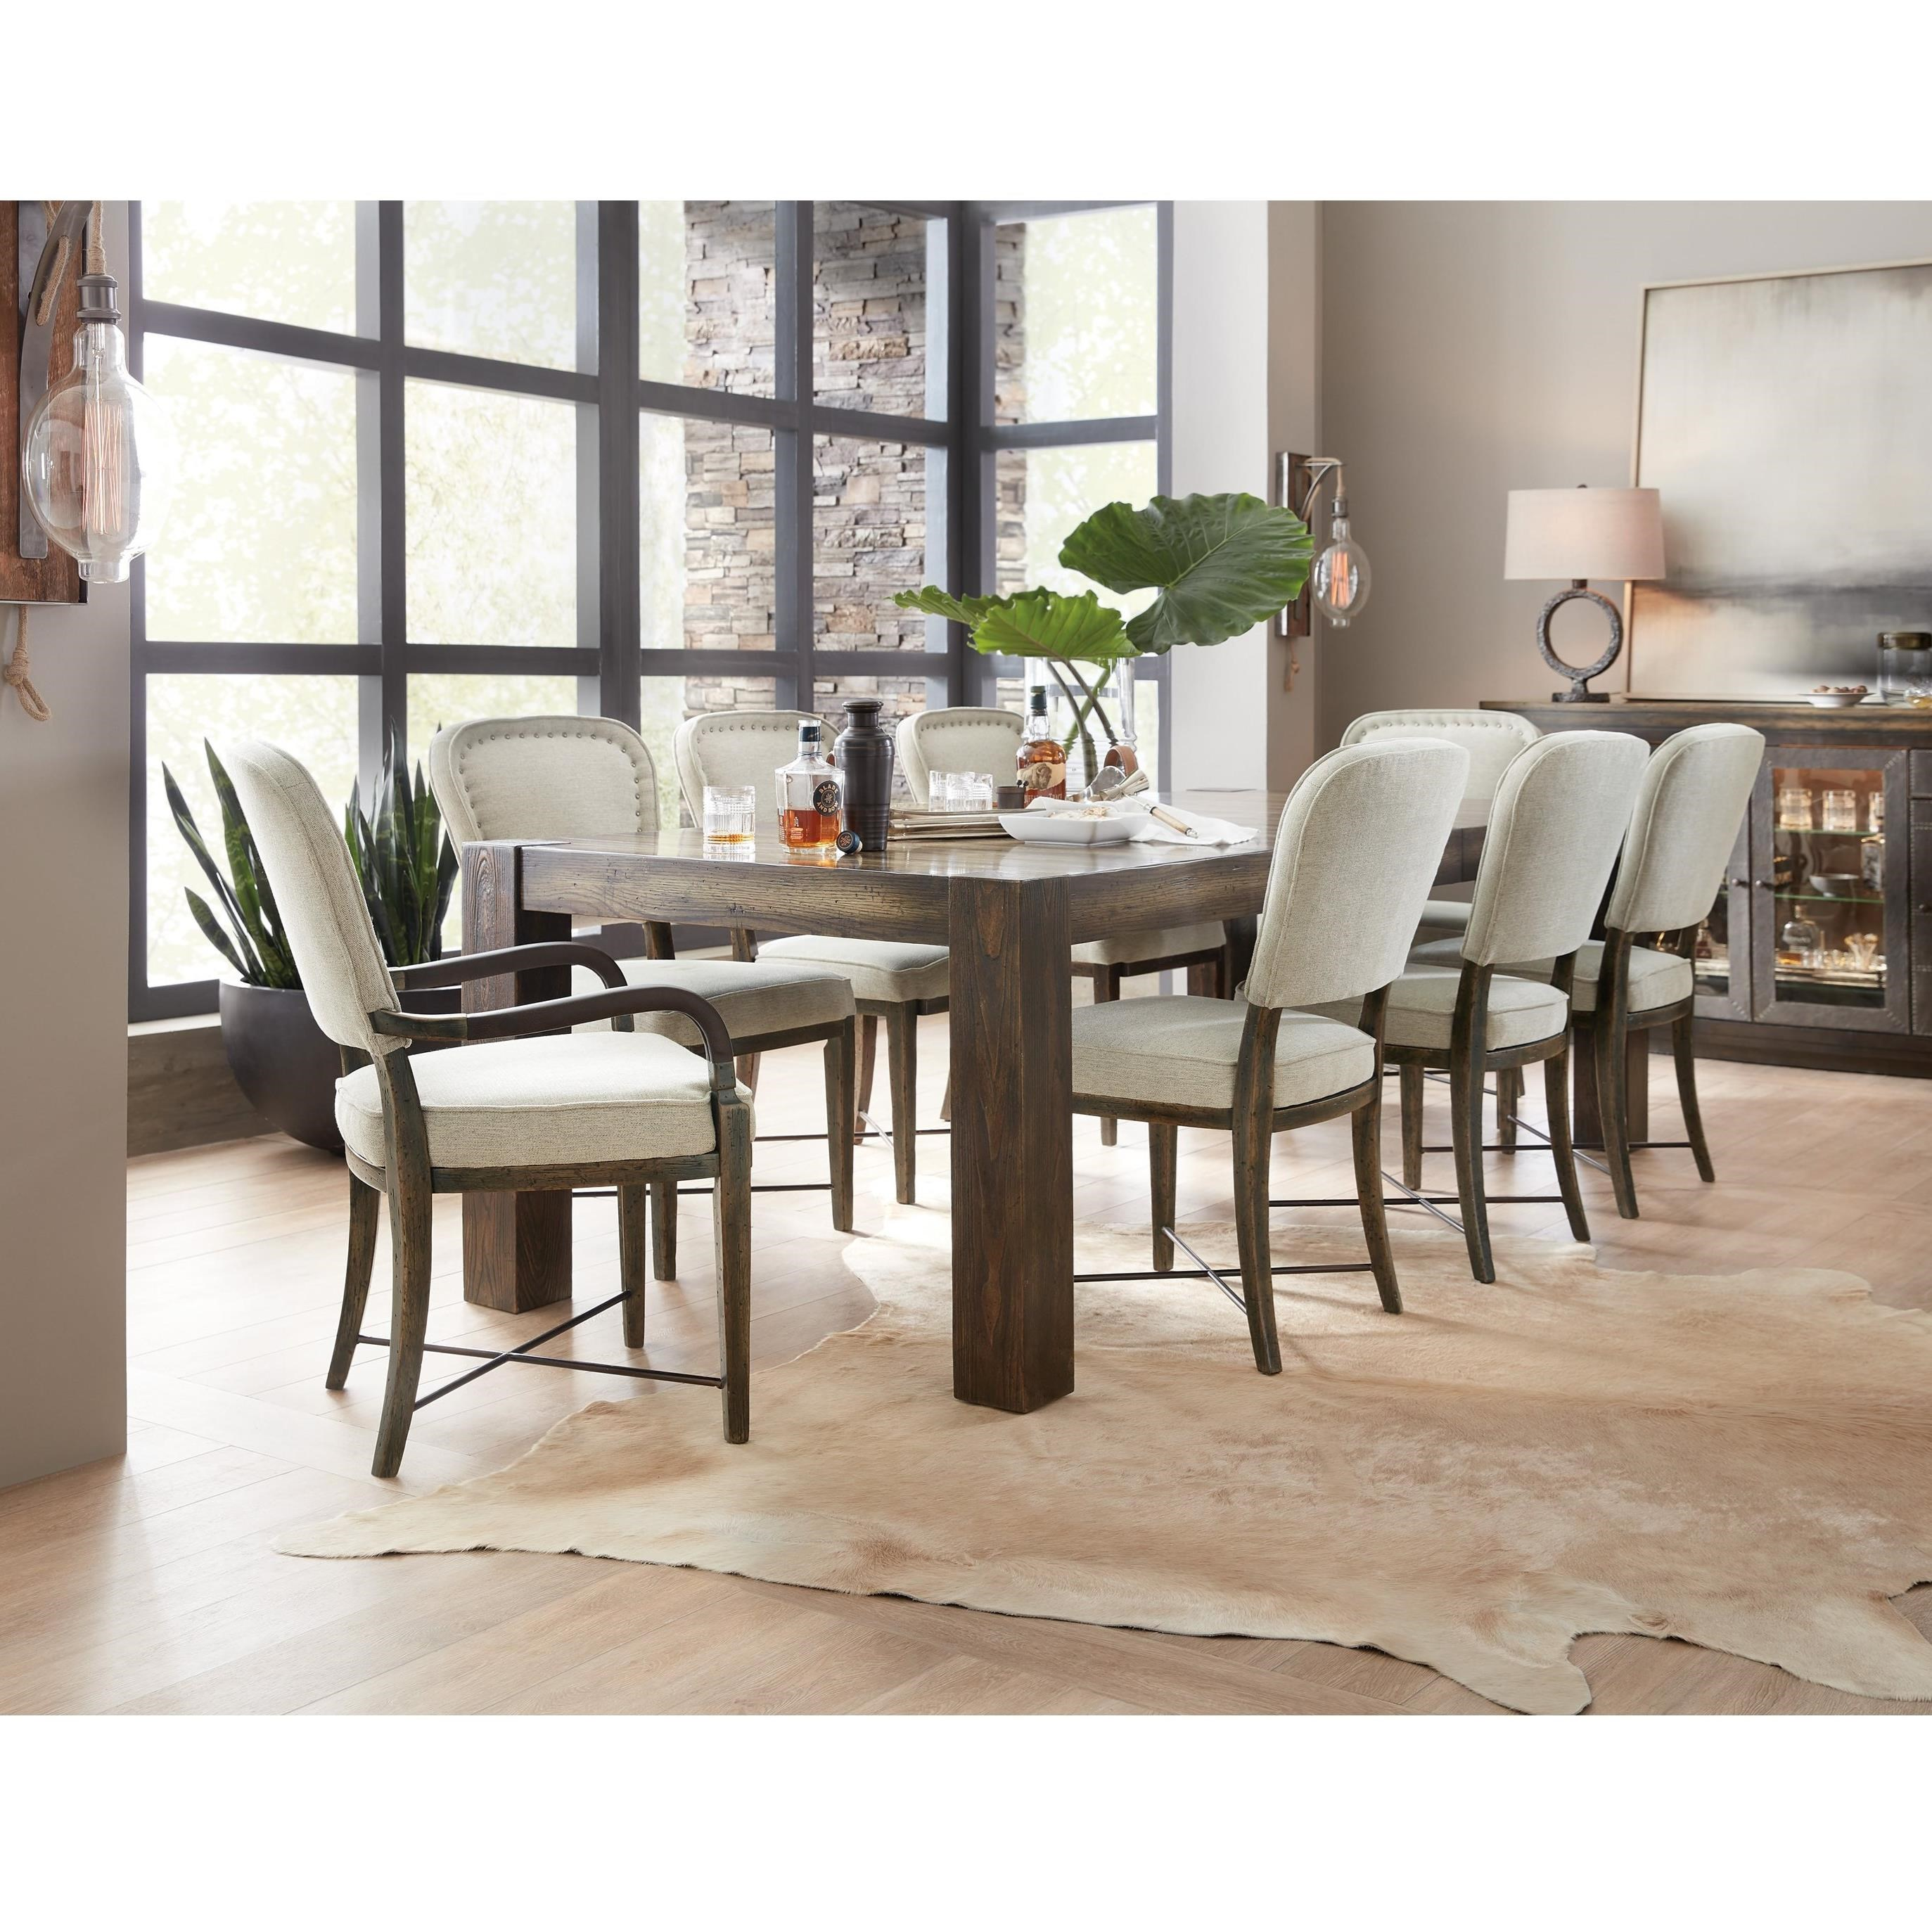 Hooker furniture american life crafted 9 piece table and Living room bedroom dinettes oh yeah